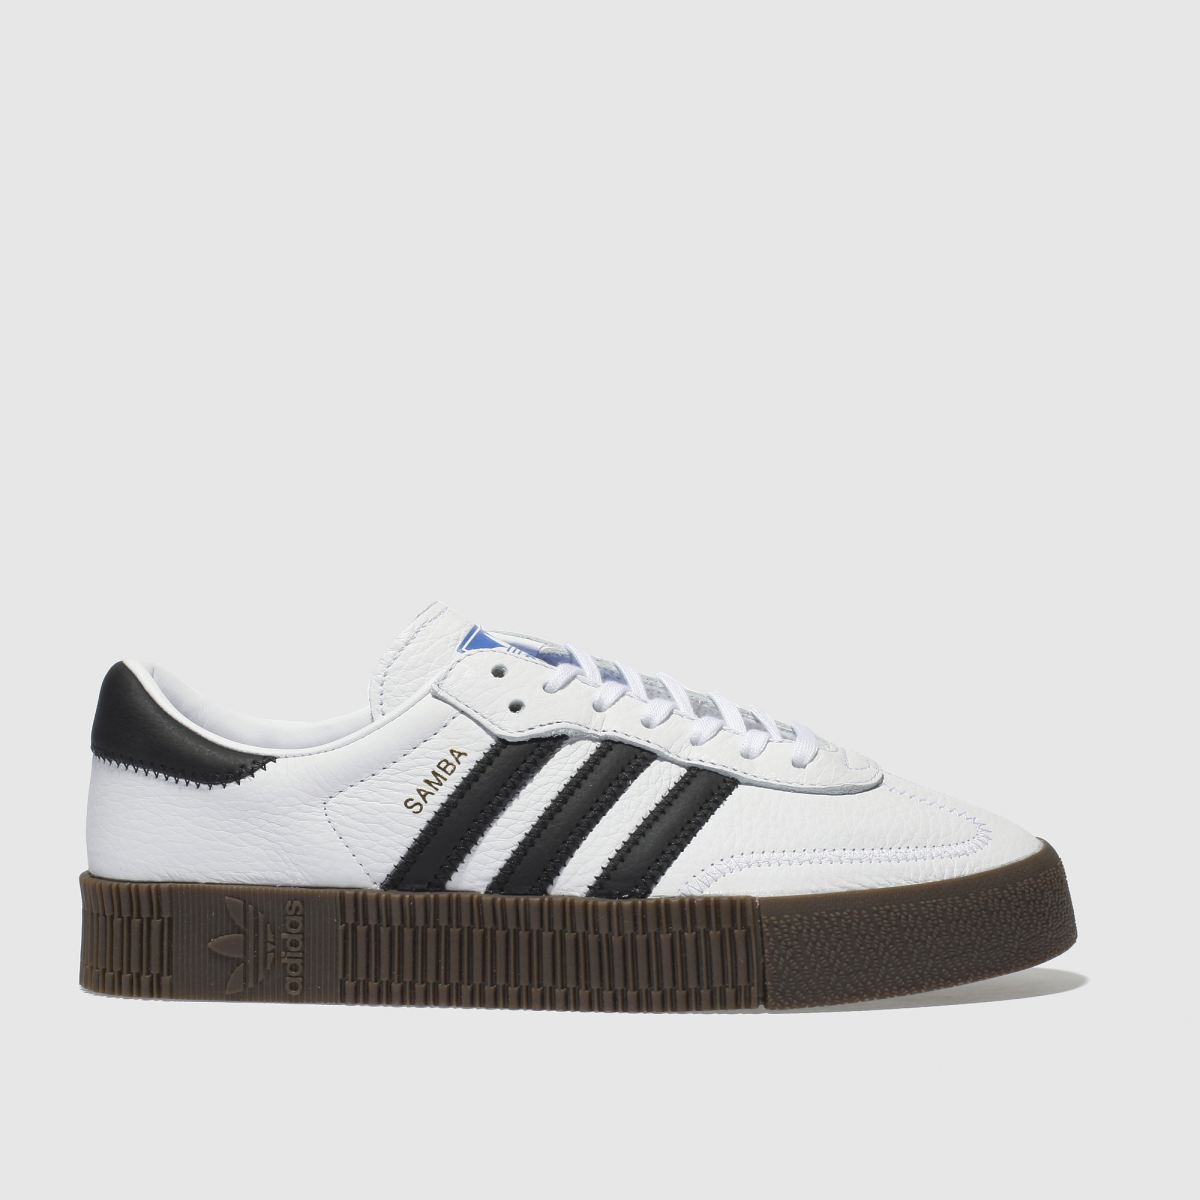 Adidas White & Black Sambarose Trainers